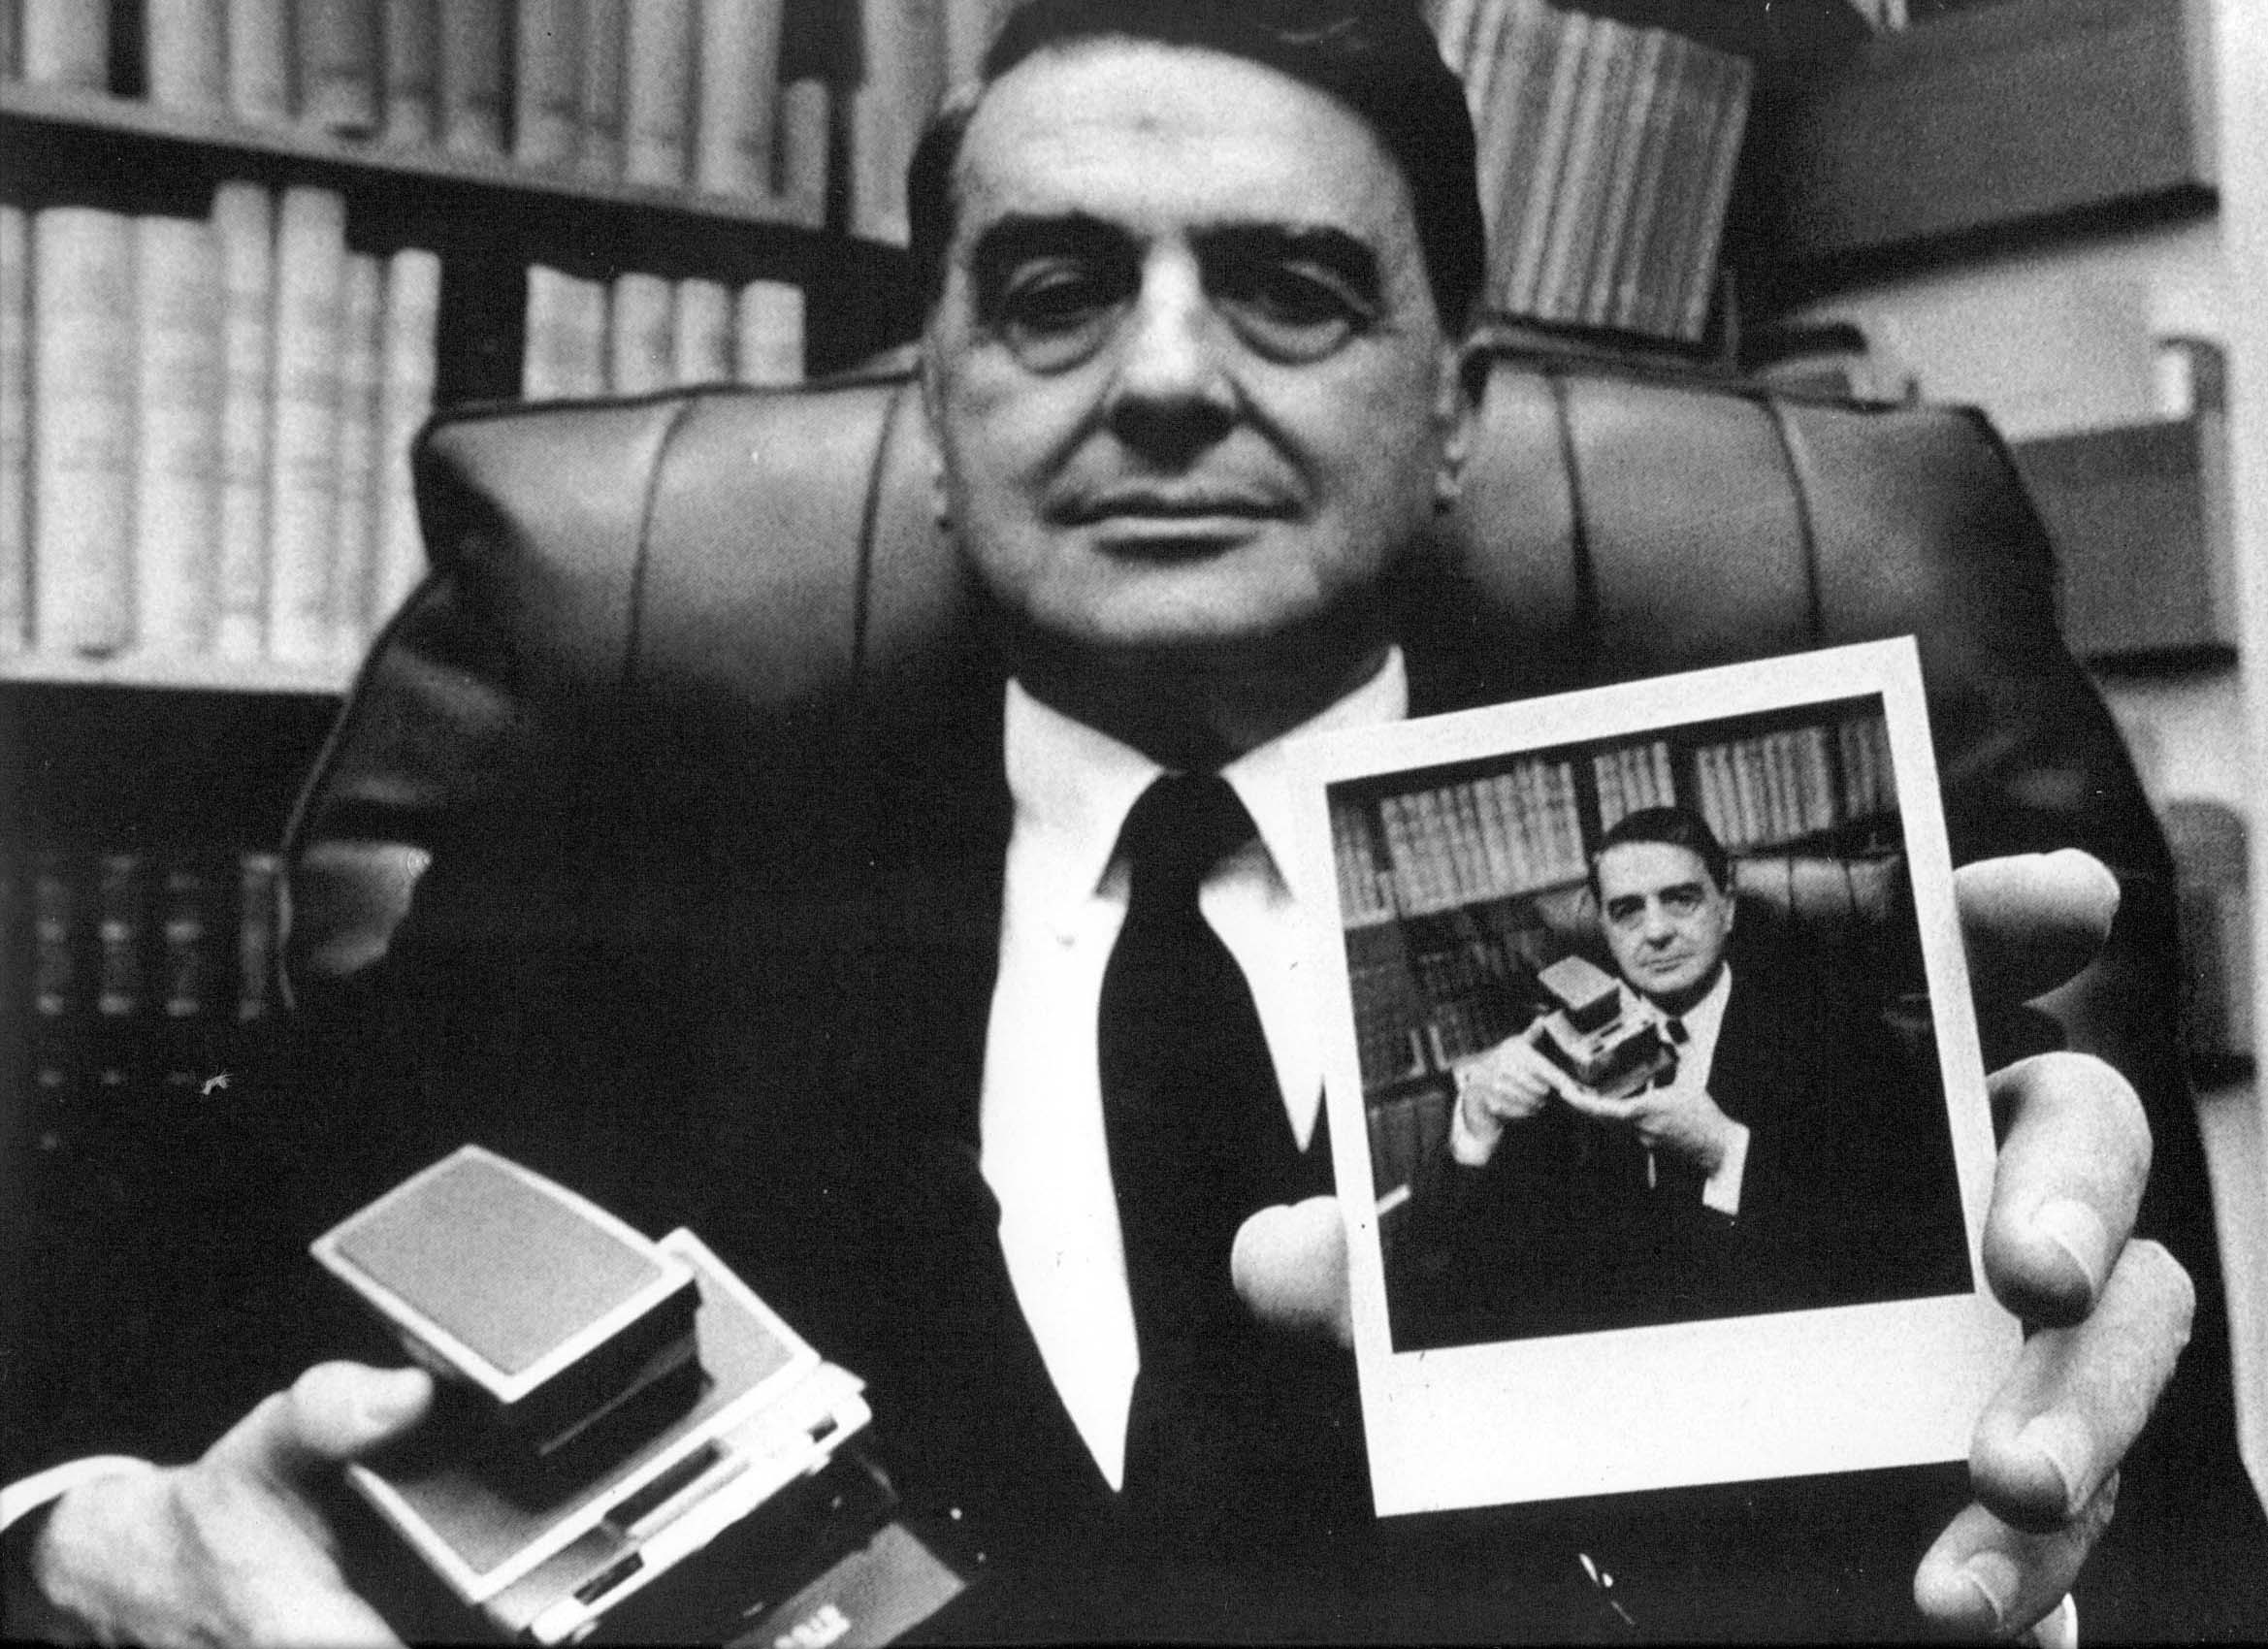 Edwin Land, American scientist and inventor, co-founded Polaroid.